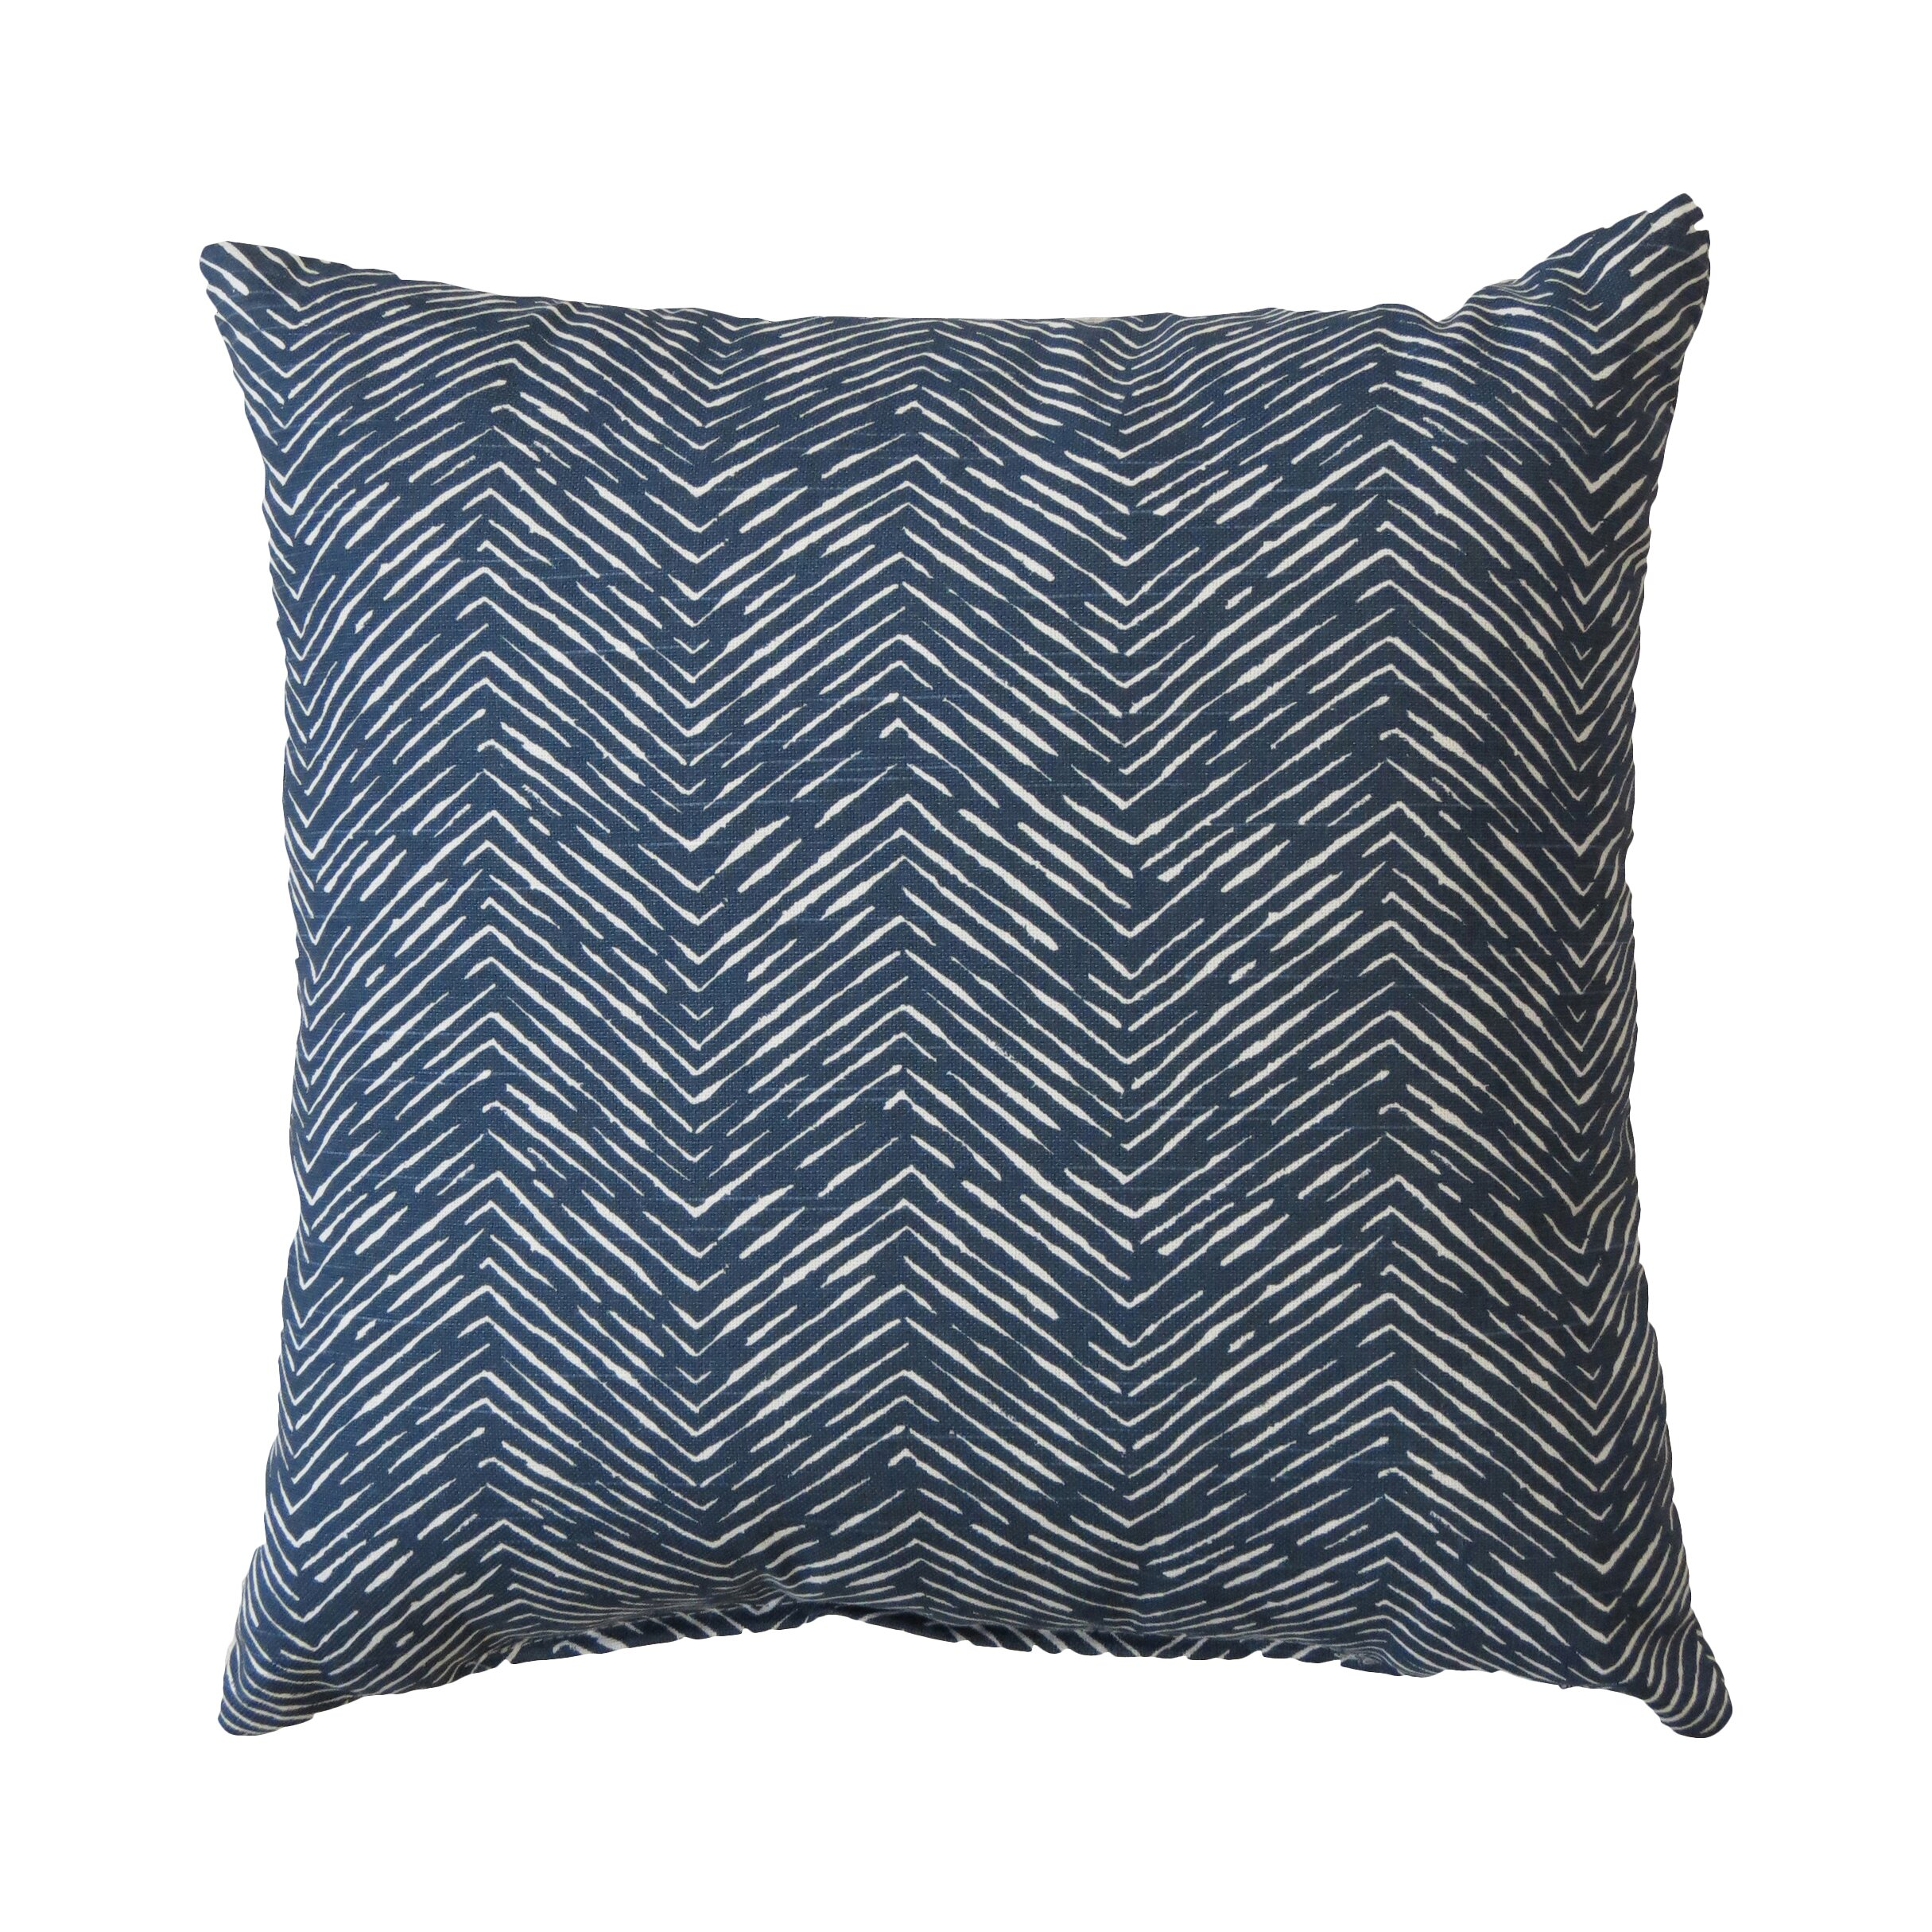 Max Studio Home Decorative Pillow - Cbaarch.com - Cbaarch.com